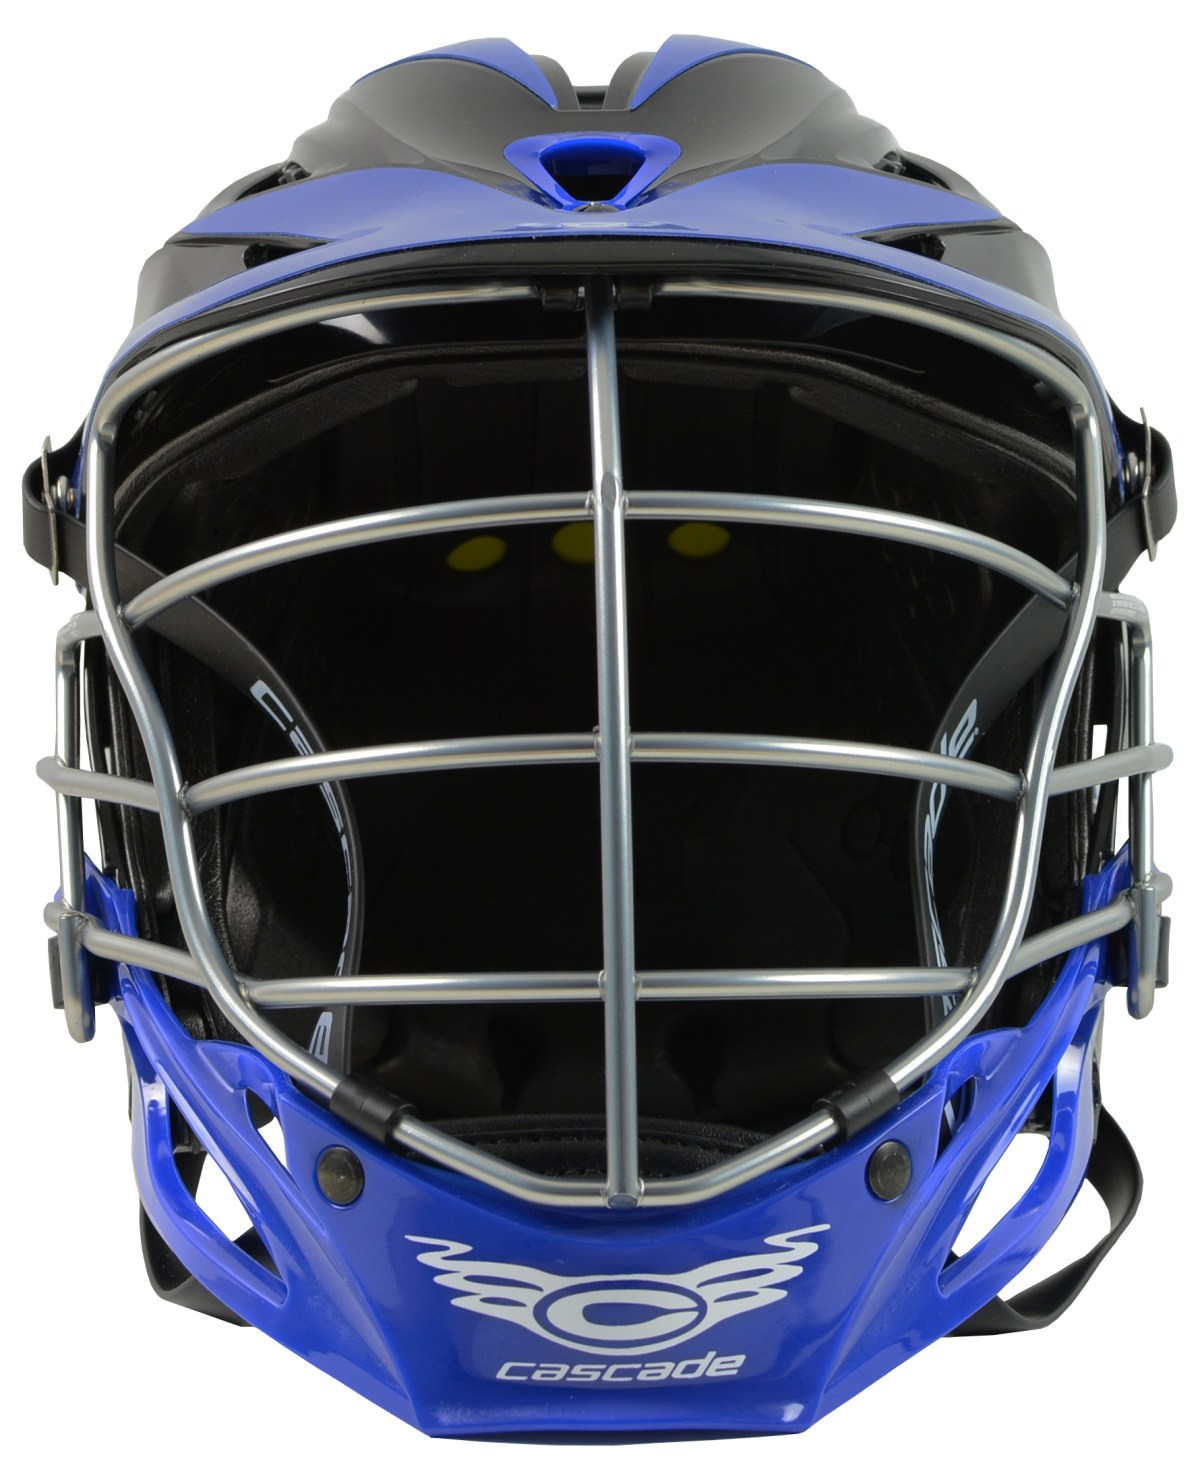 Cascade R Lacrosse helmet arrives at Sports Unlimited